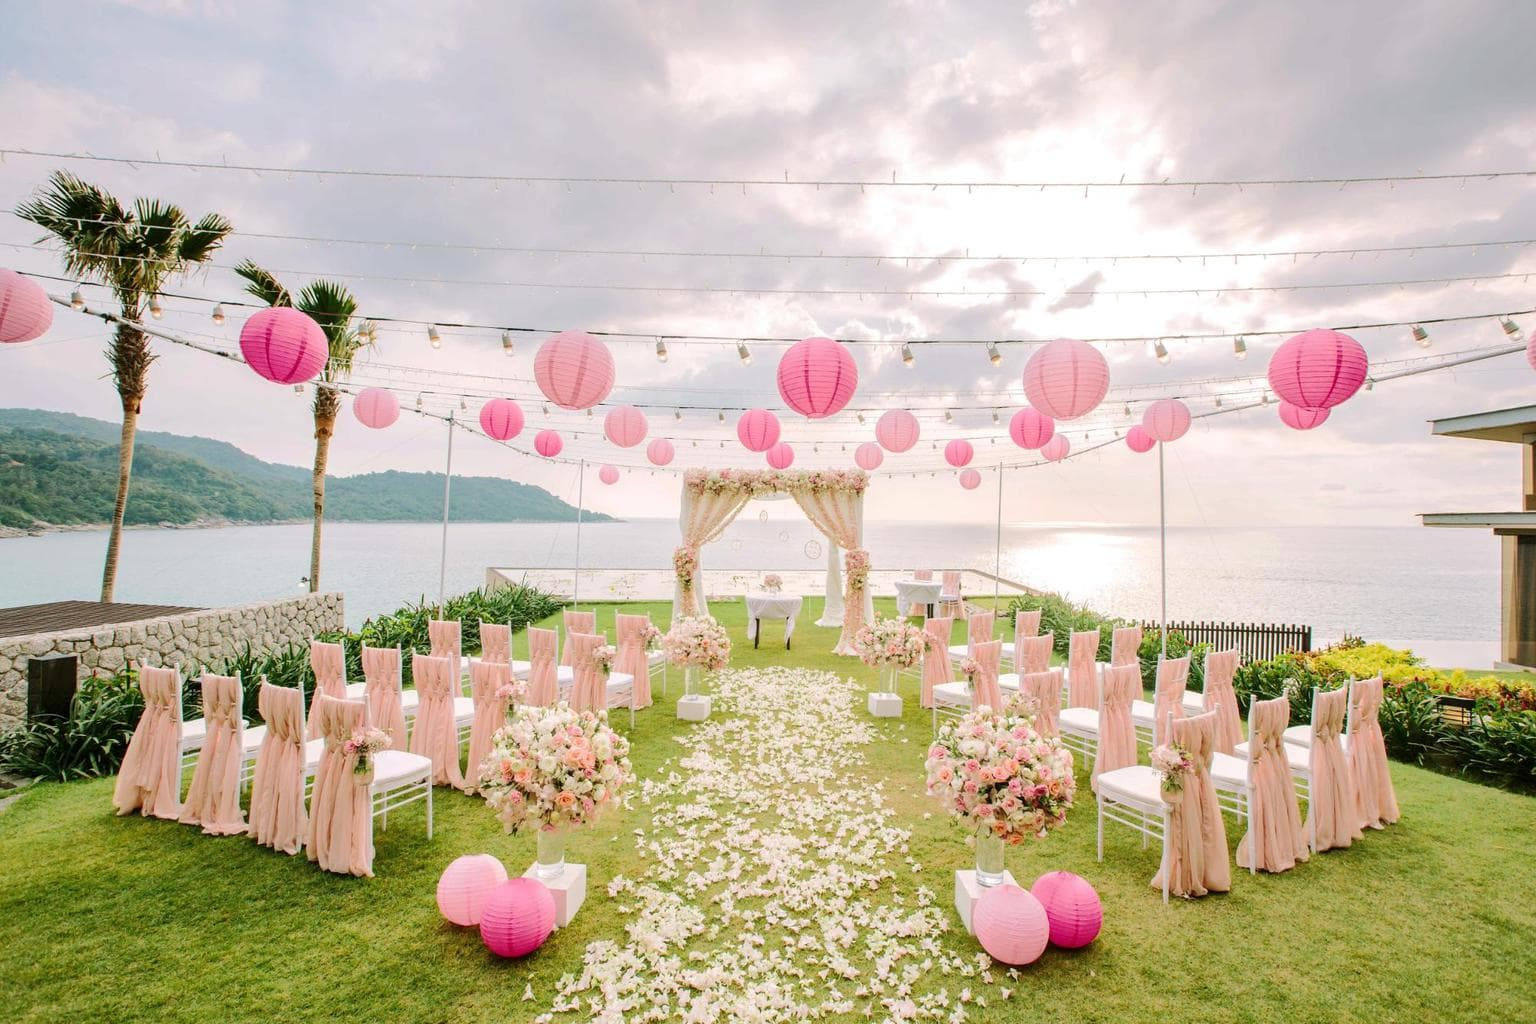 Have a destination wedding at one of the best Phuket luxury villa